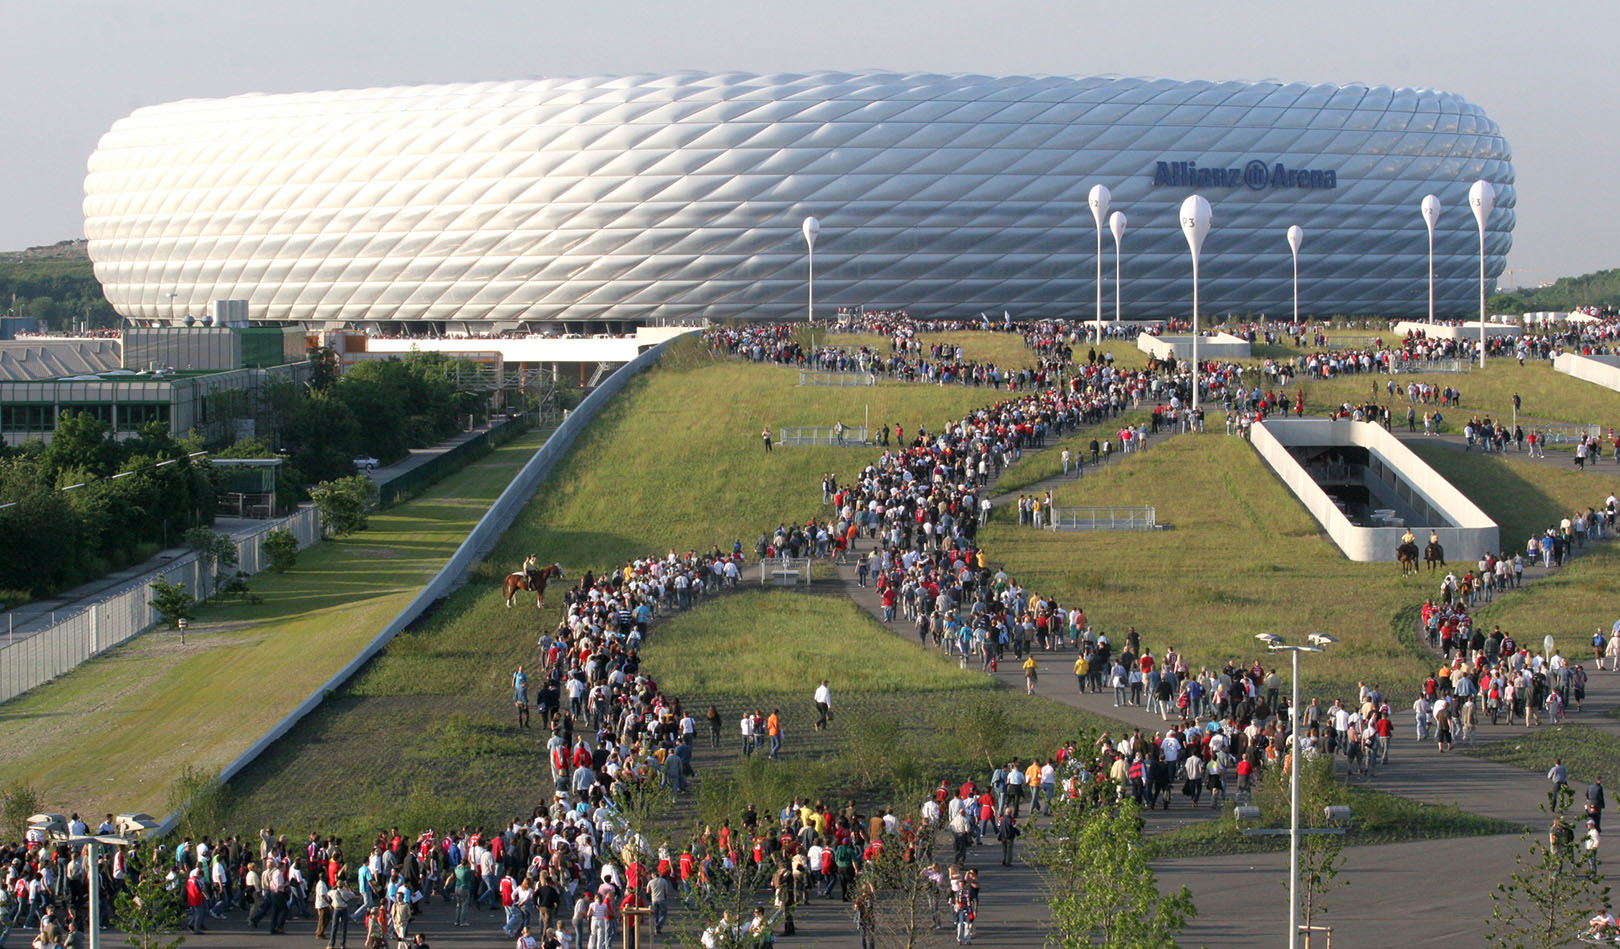 The Allianz Arena in Munich.